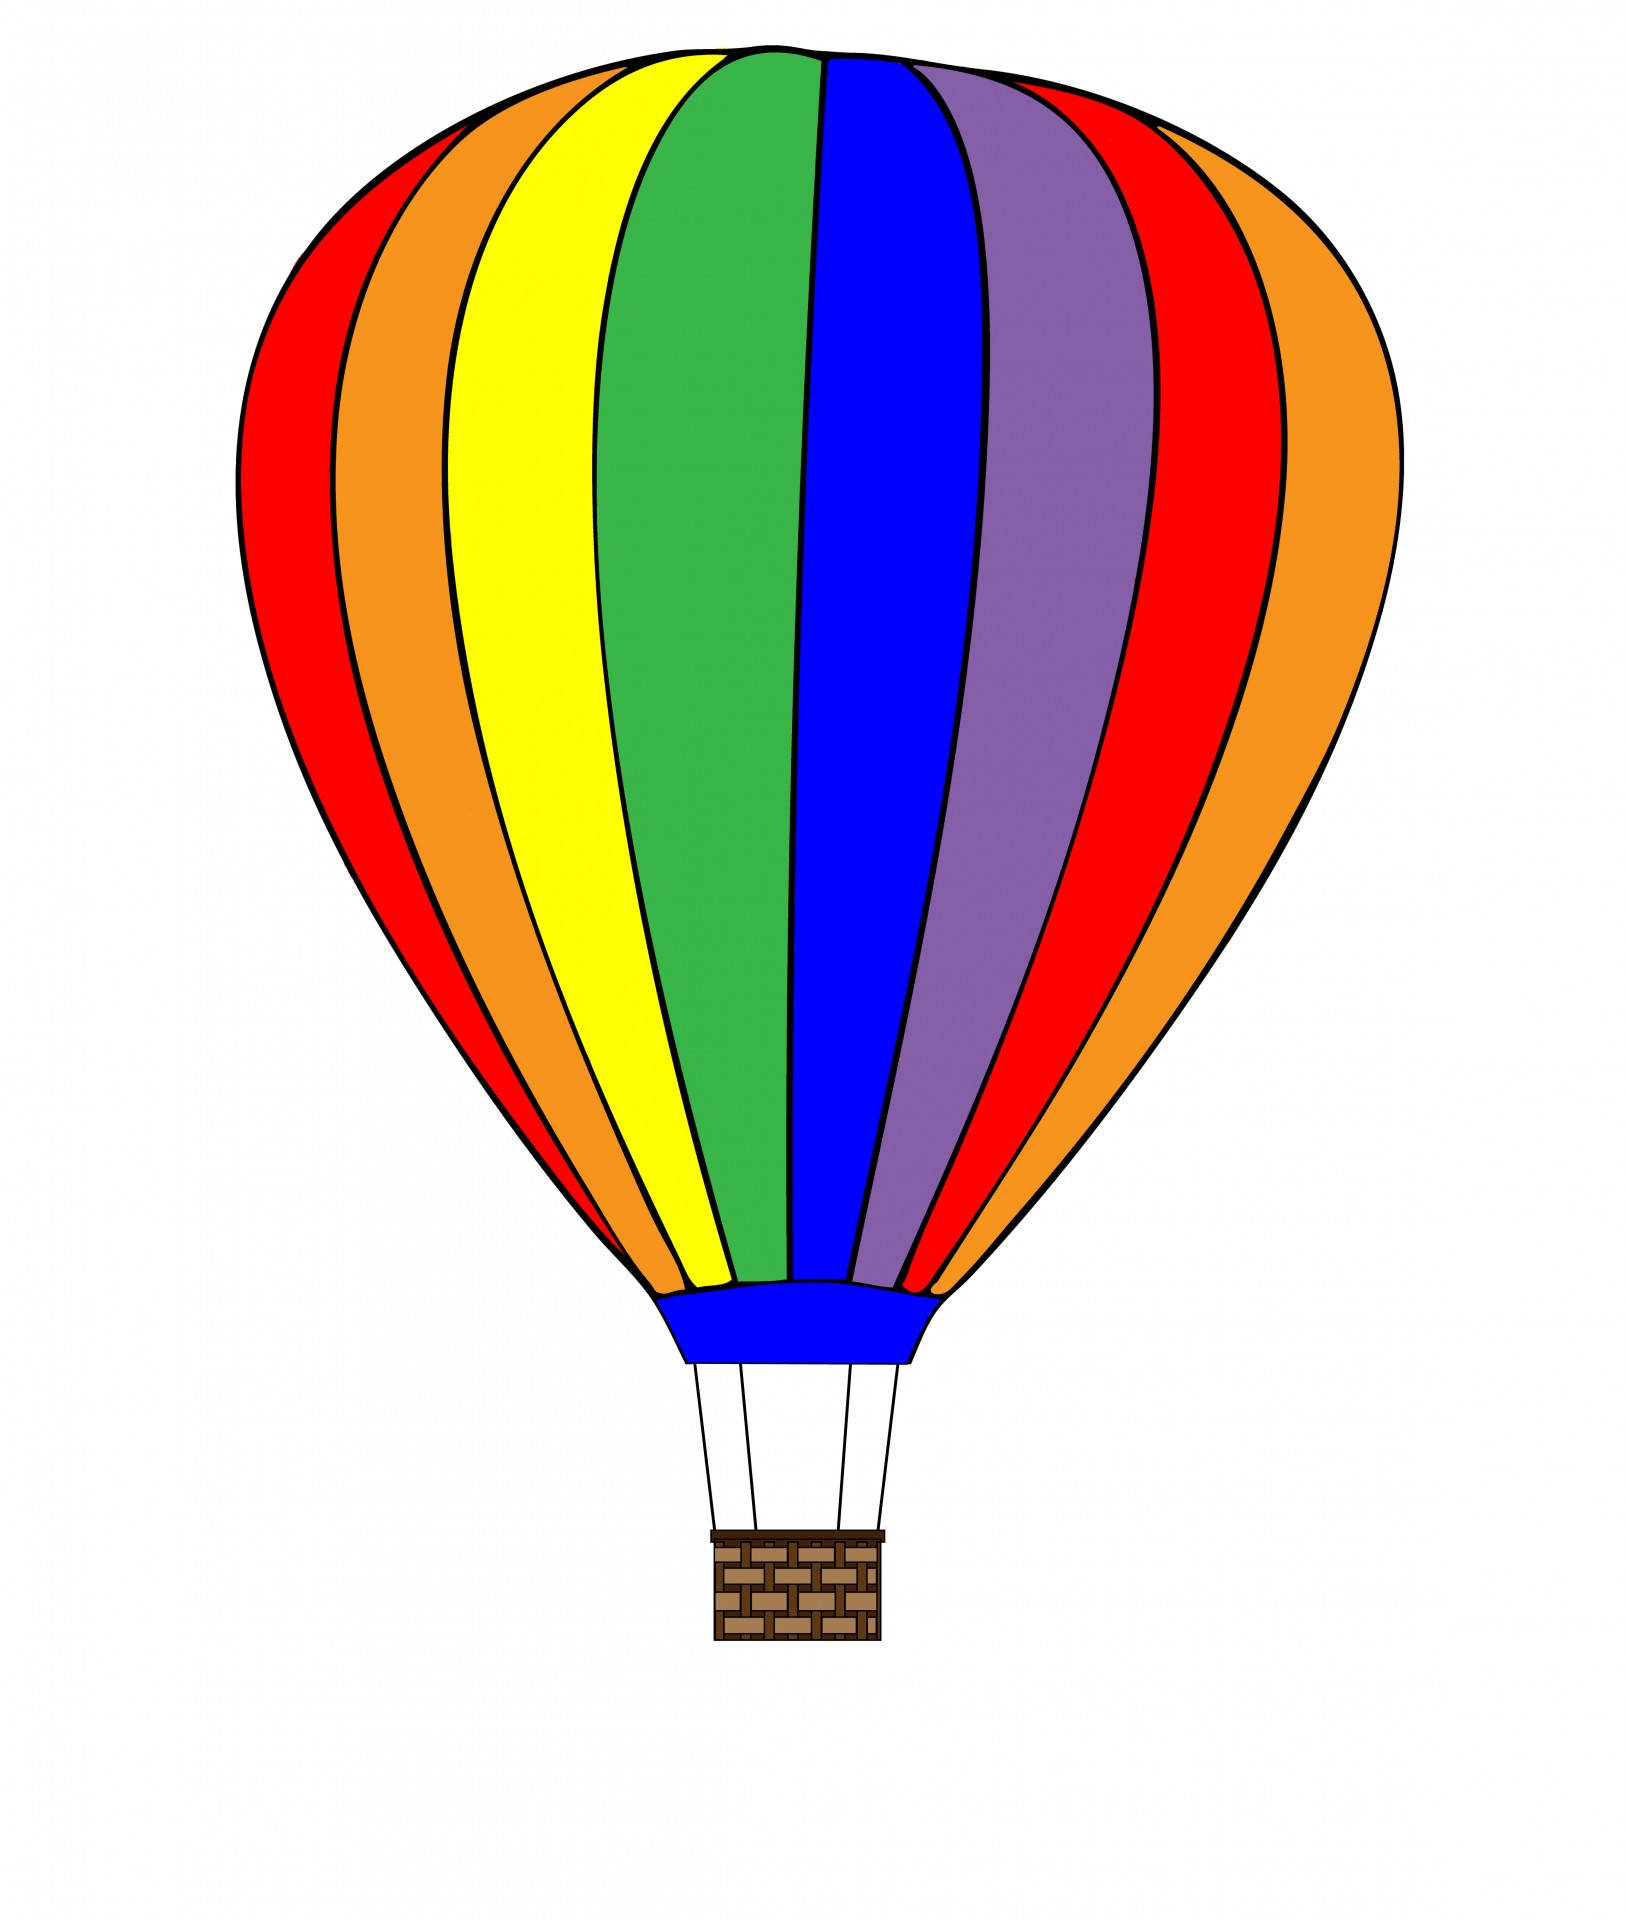 Hot Air Balloon Clipart - Hot Air Balloon Images Clip Art